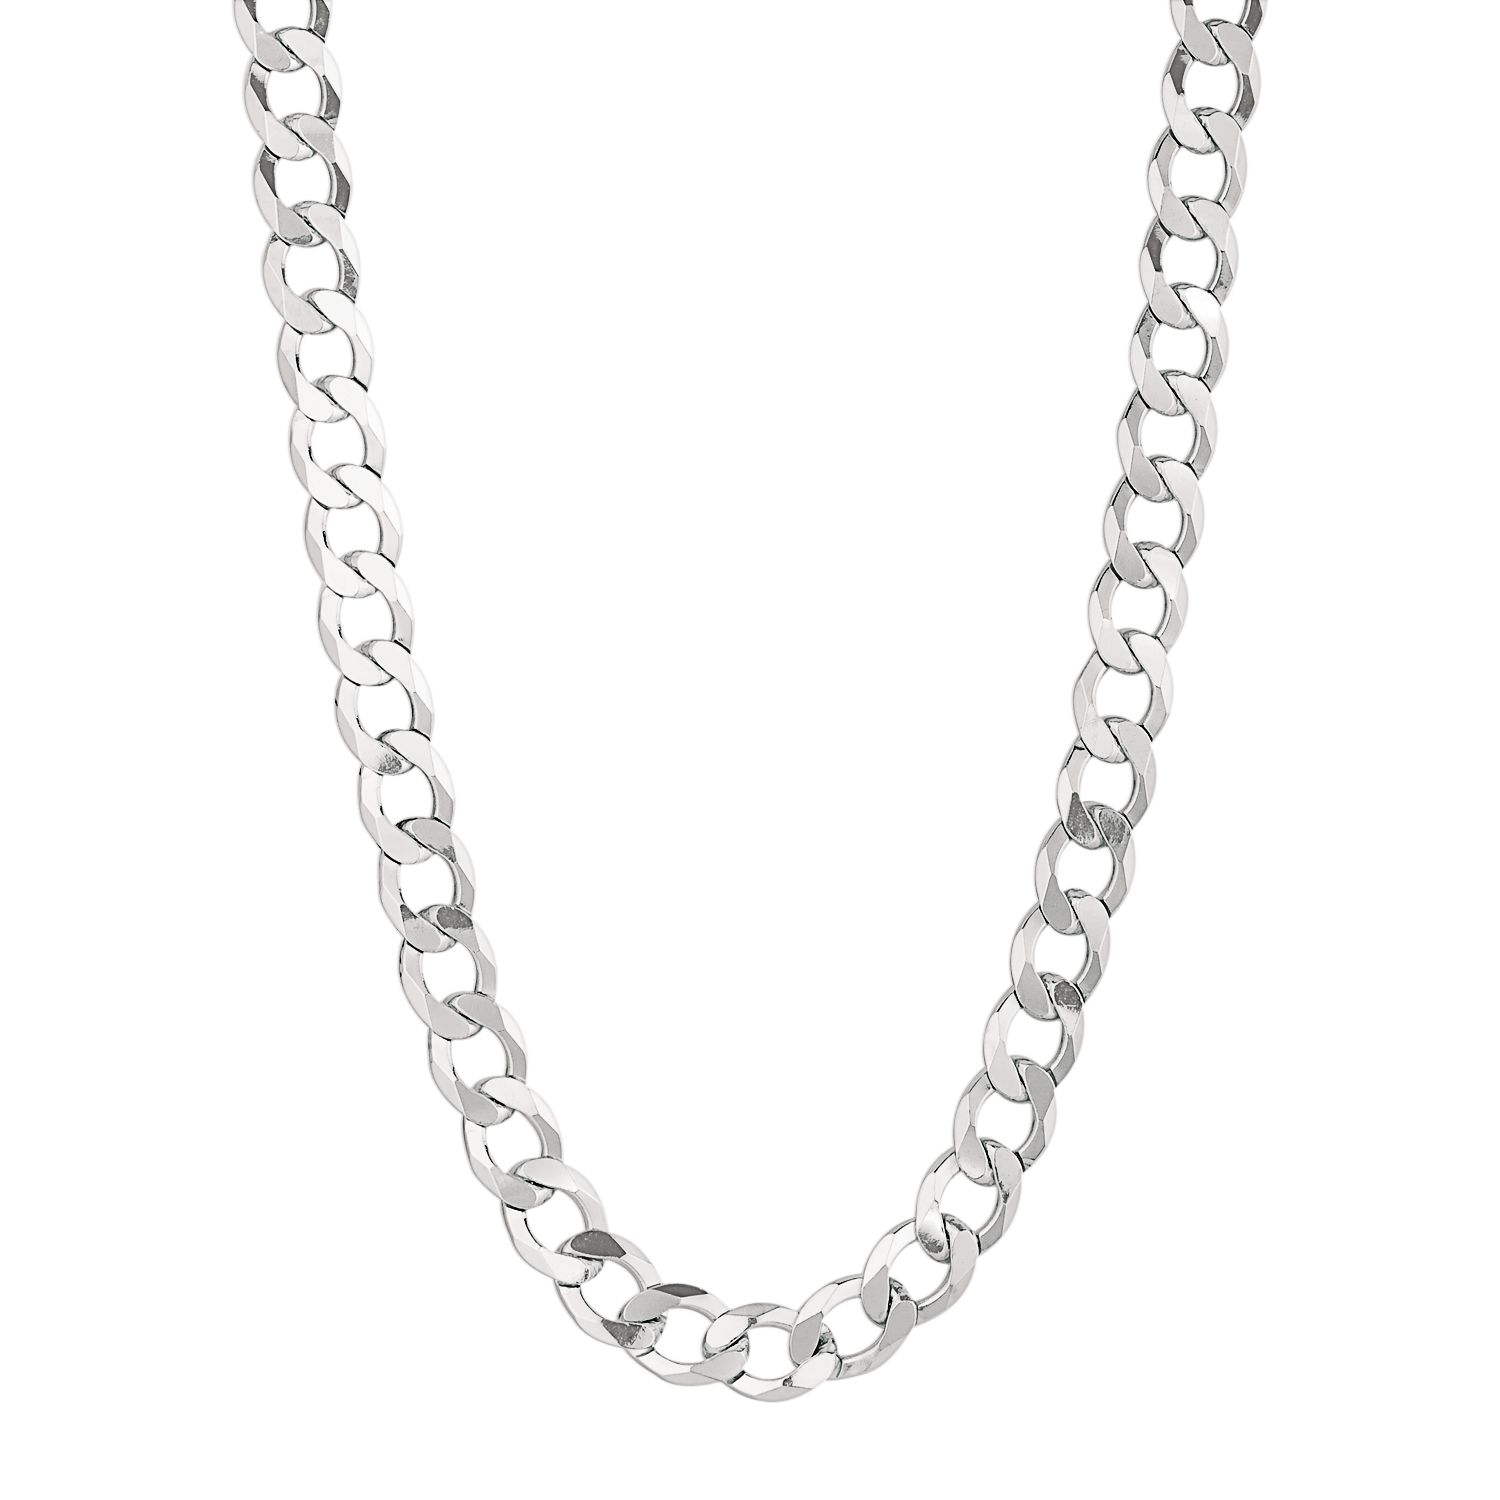 sterling silver curb chain necklace 20in men